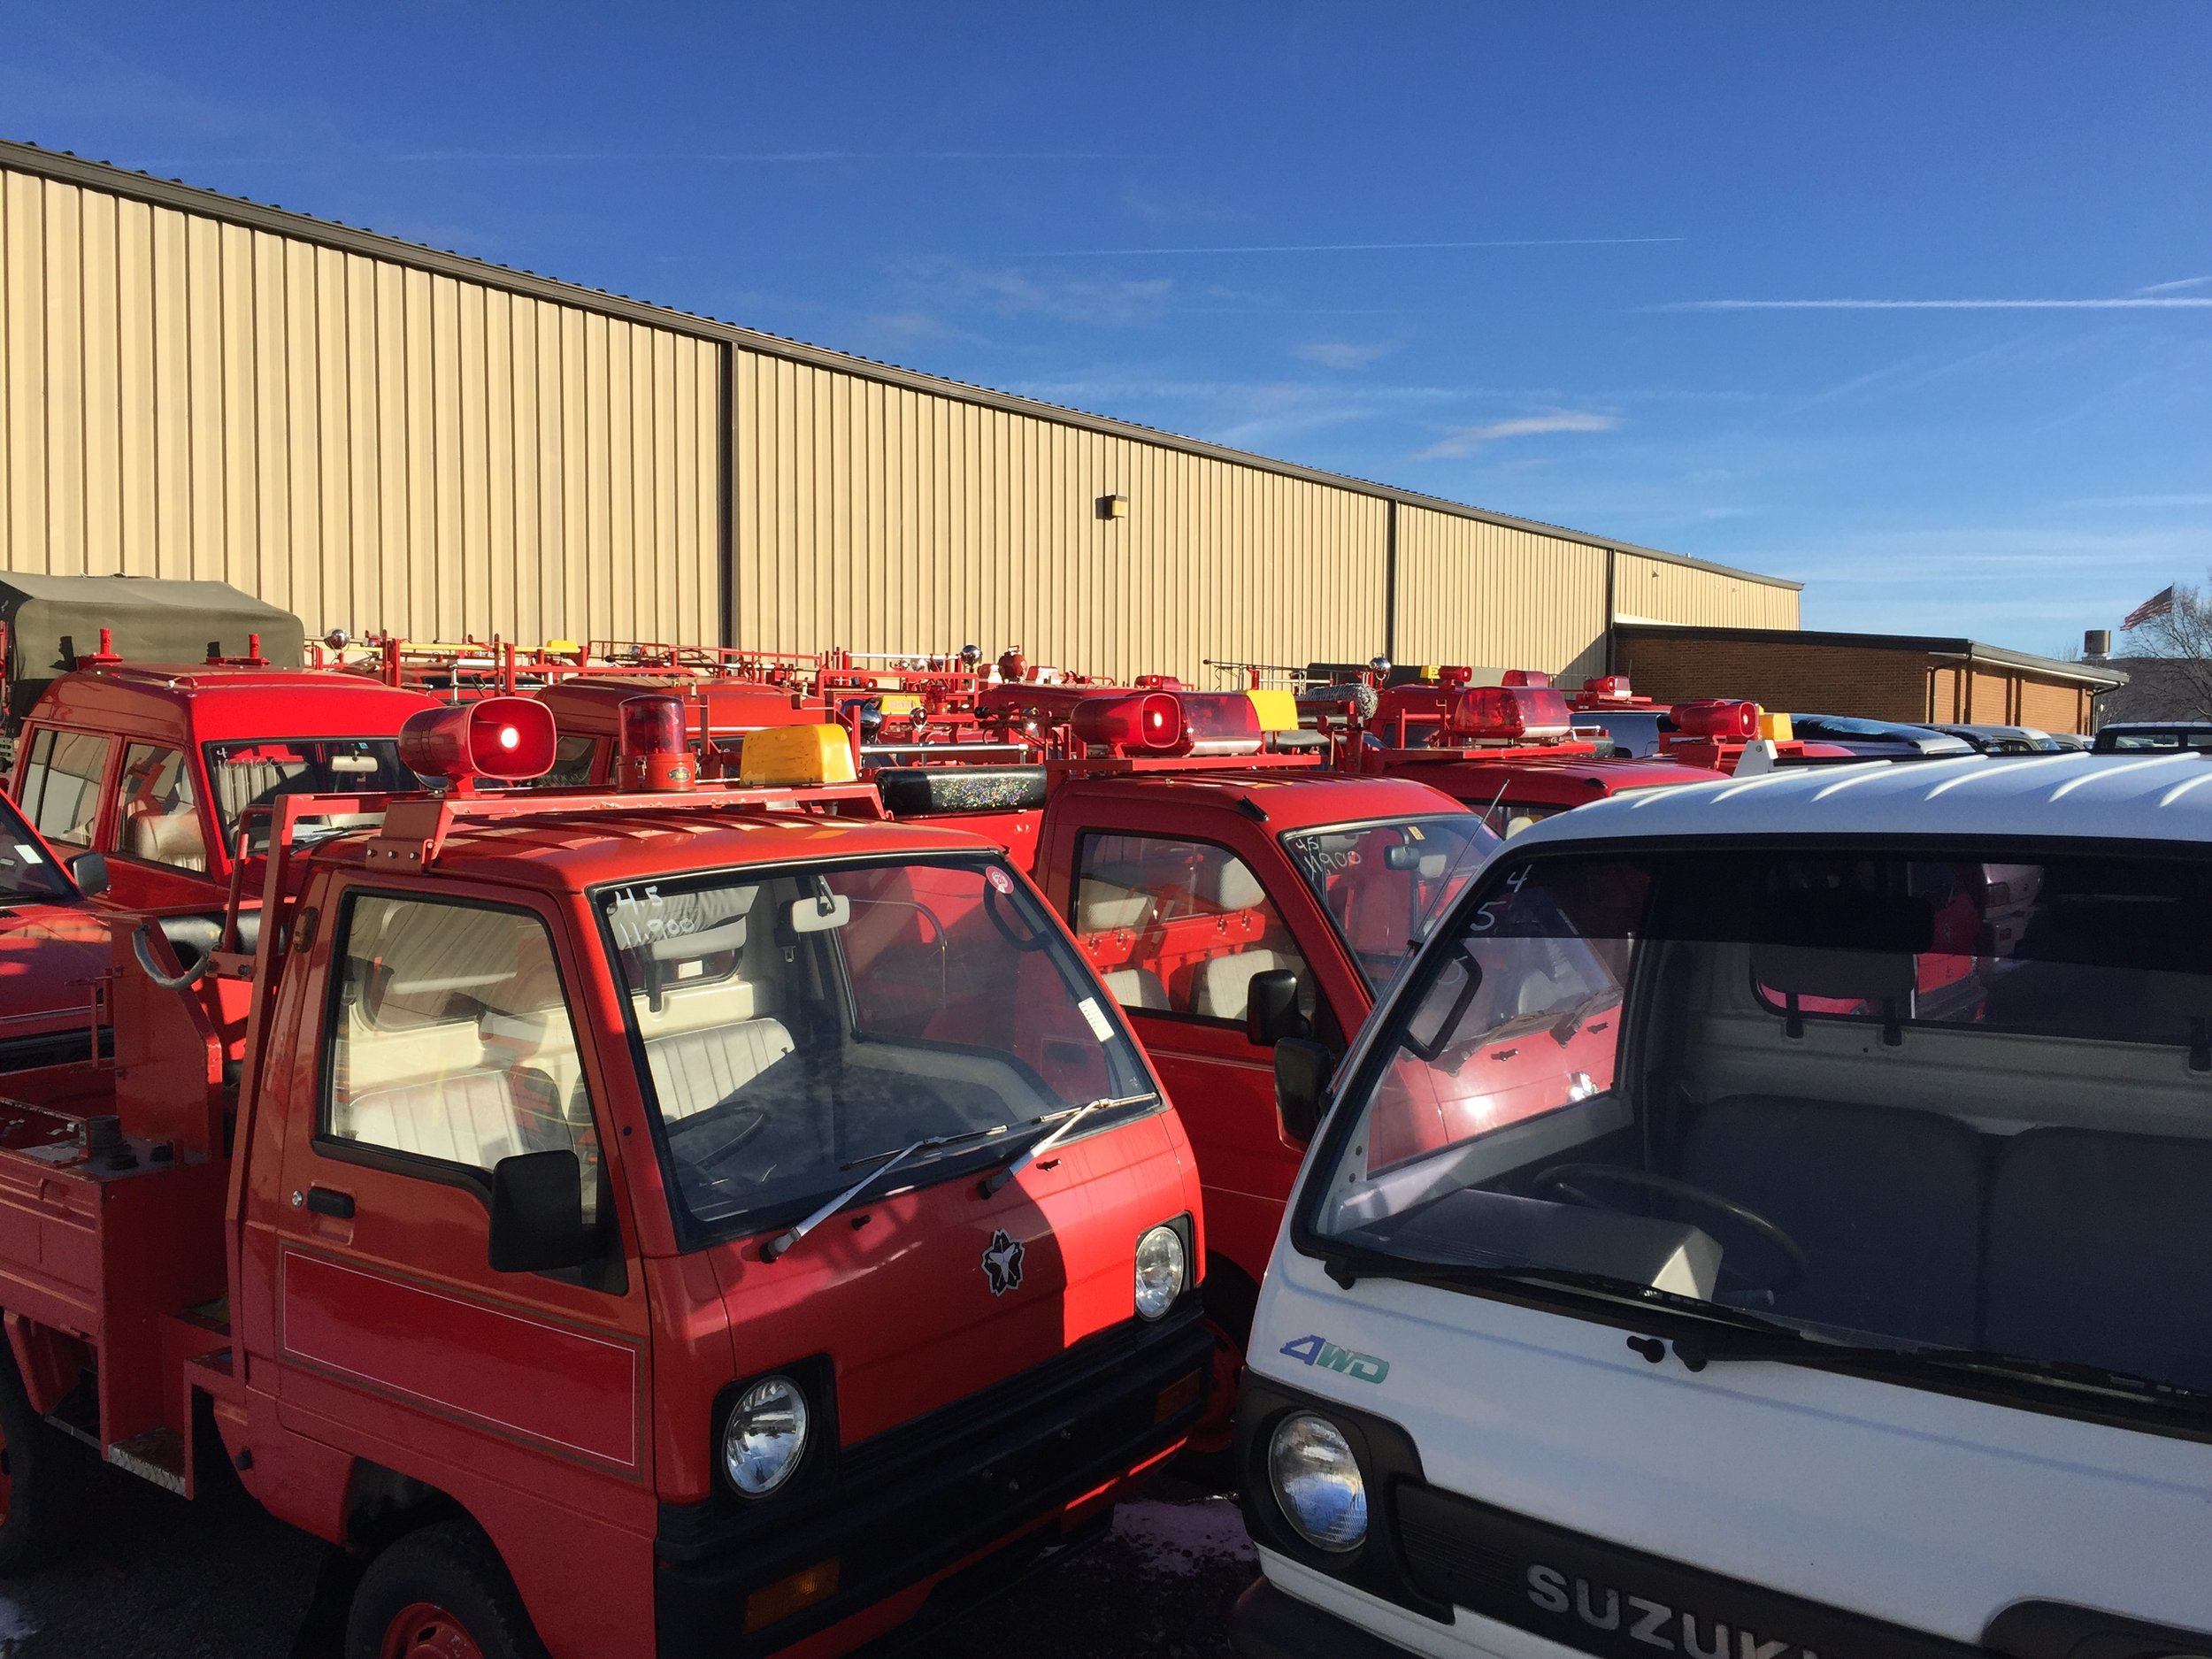 """Sprawling collection of less than 1000cc trucks from Japan but sold worldwide (not in the US). Efficient small, space and fuel efficient 4x4 trucks are the """"real men"""" of the automotive universe. These vehicles deliver everything in Japan and fight fires in small towns. Many are for sale!"""